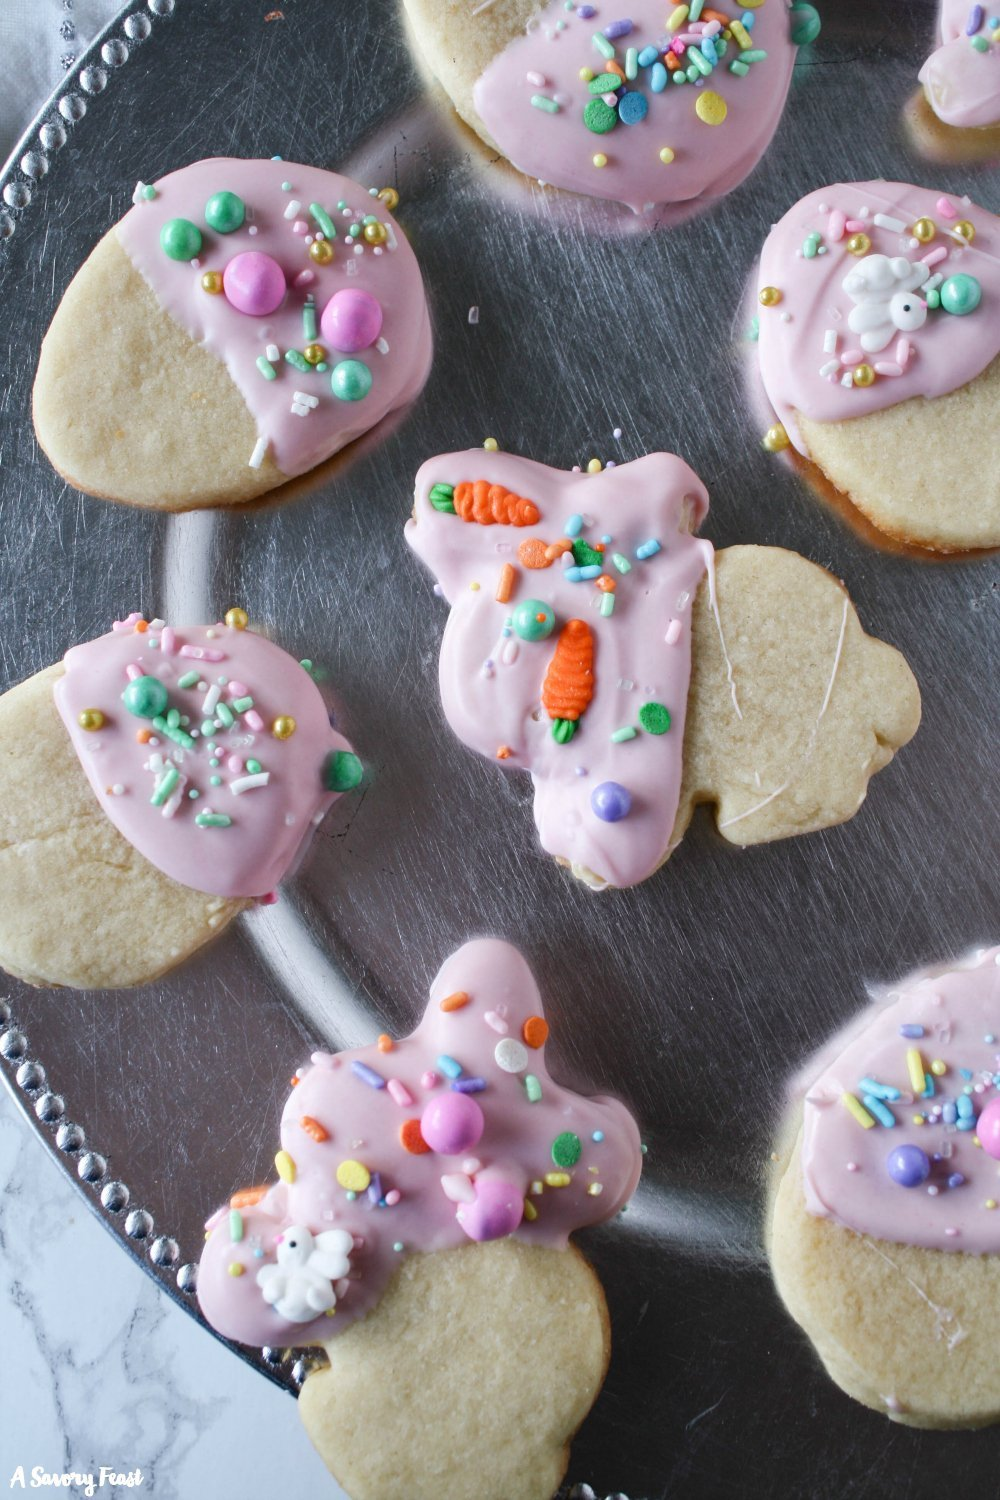 The sweetest cookies to make for Easter this year! Easter White Chocolate Dipped Sugar Cookies start with a classic sugar cookie that is cut into cute Easter shapes such as eggs and bunnies. The cookie is dipped into melted white chocolate and topped with Easter sprinkles!